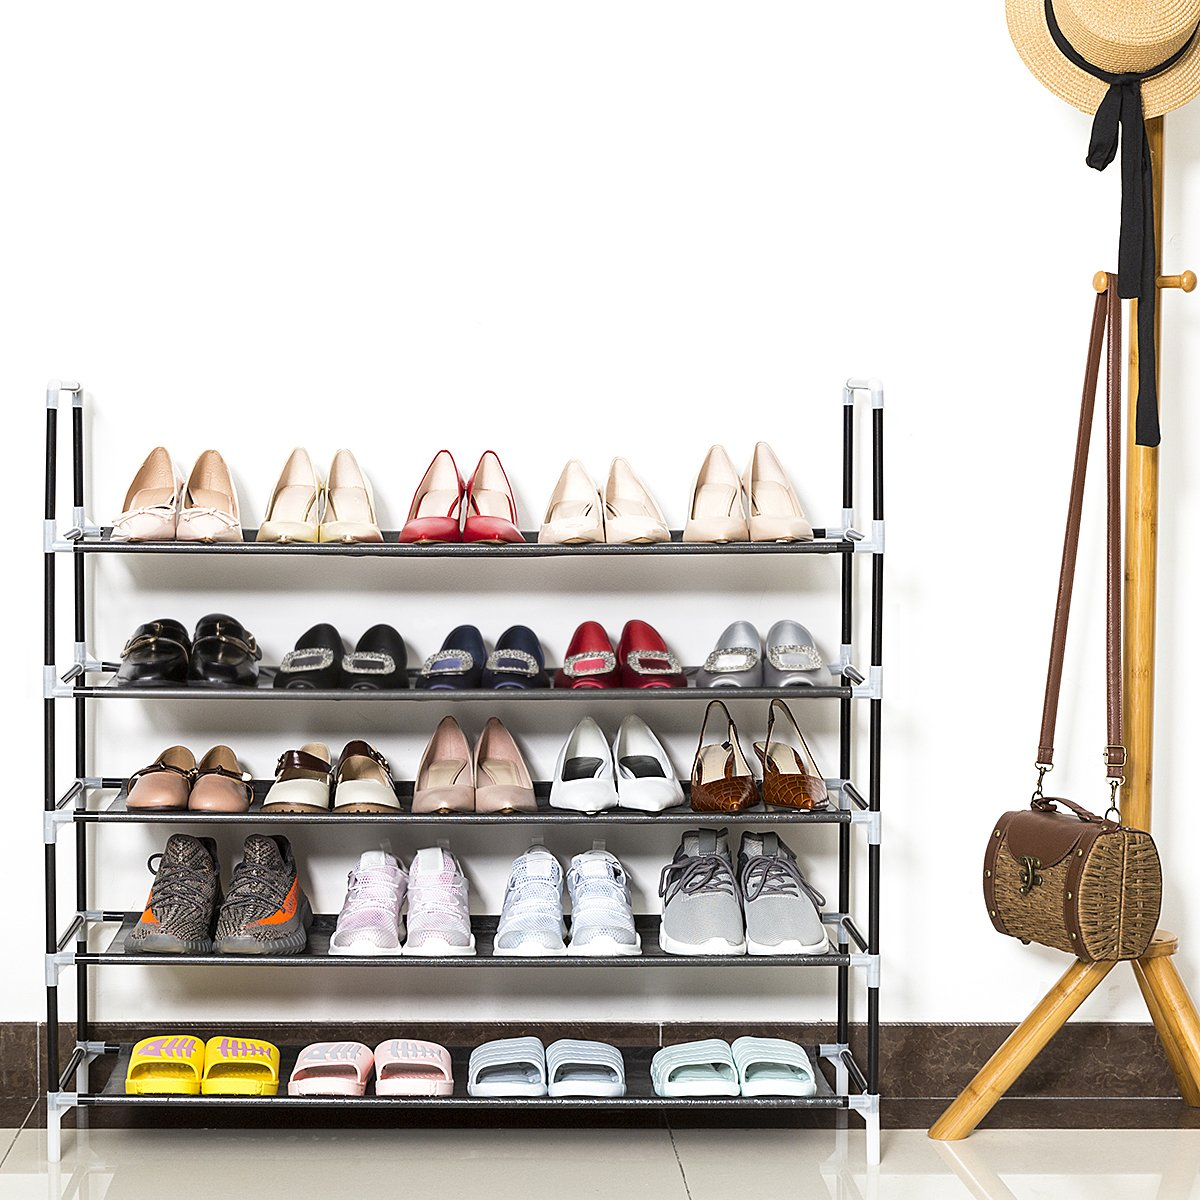 WISHPOOL 5 Tier Shoe Rack for Women Men Space Saving Shoe Tower Organizer Cabinet Black Holds 20-25 Pair of Shoes 39\'\'L